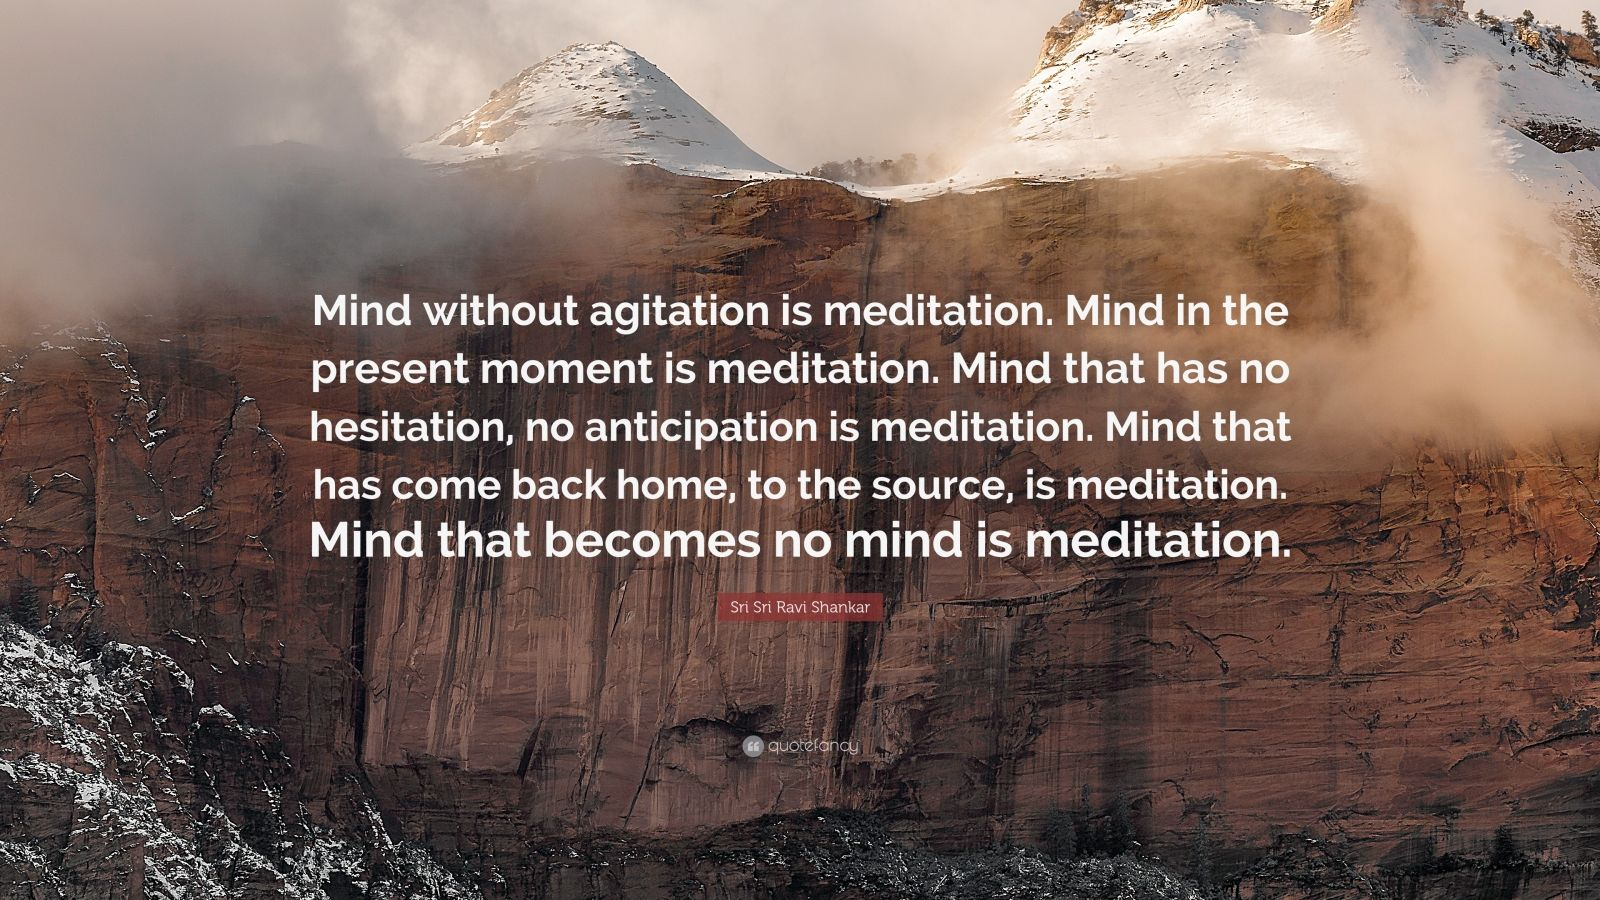 "Sri Sri Ravi Shankar Quote: ""Mind without agitation is meditation. Mind in the present moment is meditation. Mind that has no hesitation, no anticipation is meditation. Mind that has come back home, to the source, is meditation. Mind that becomes no mind is meditation."""